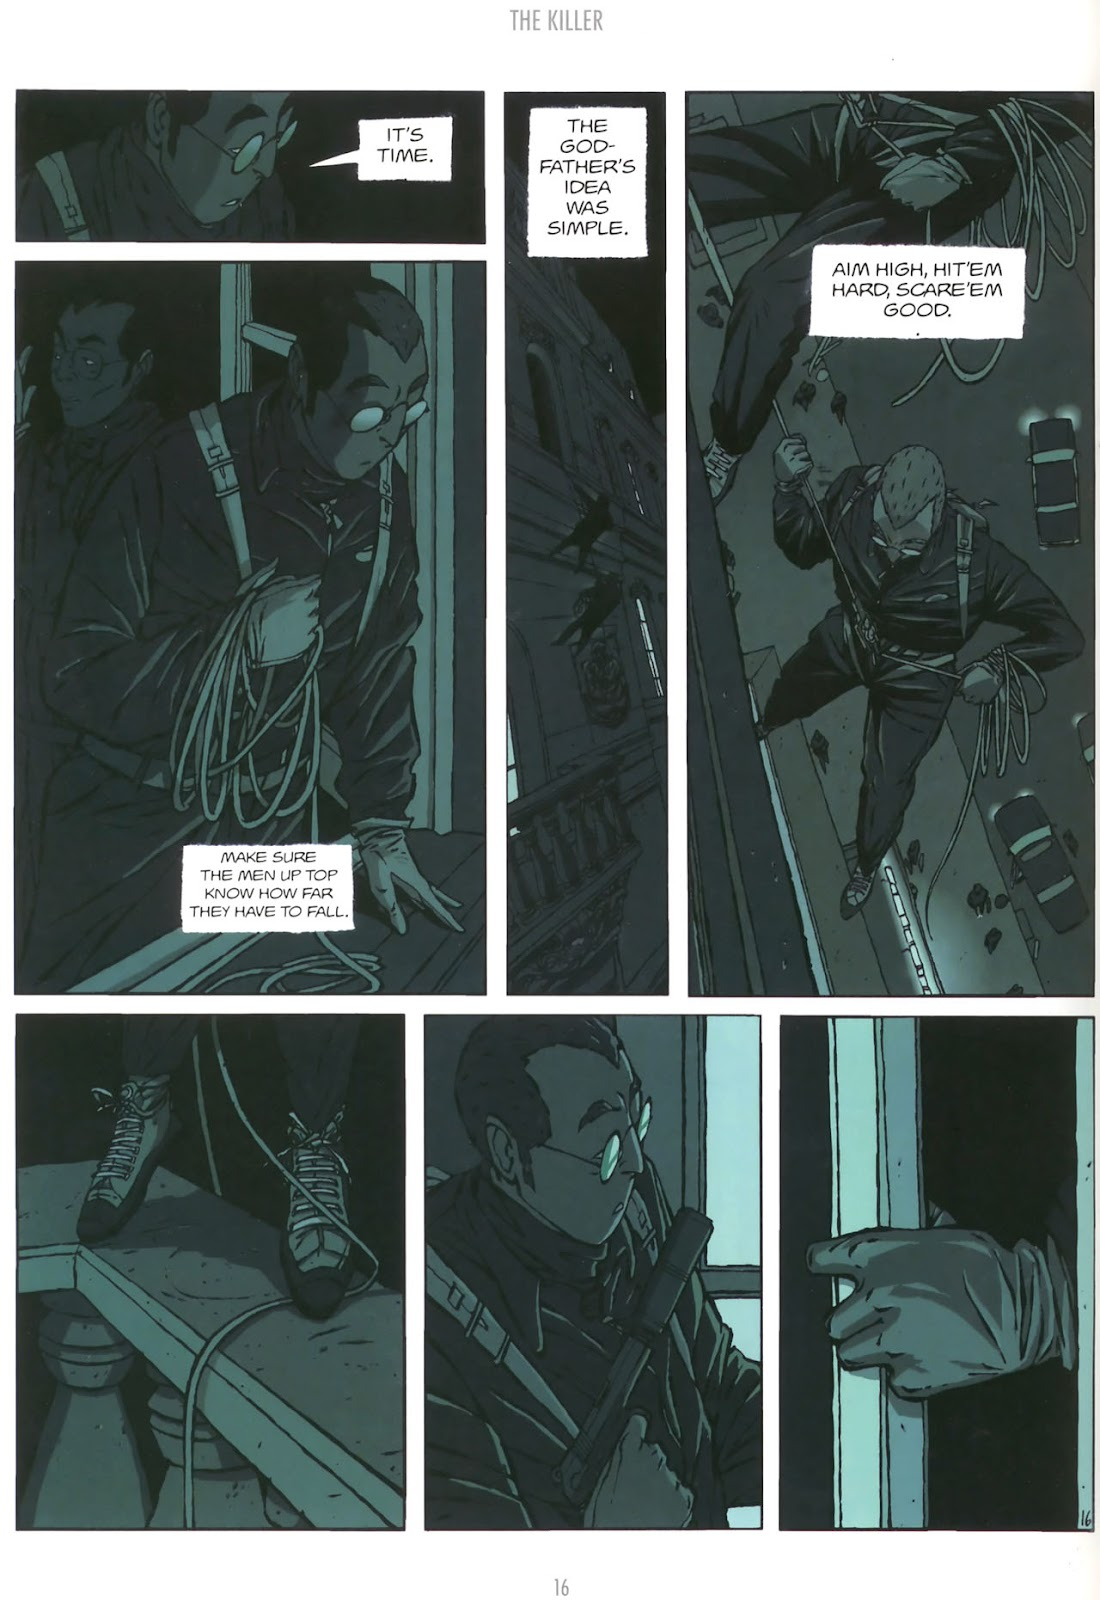 Read online The Killer comic -  Issue #5 - 18